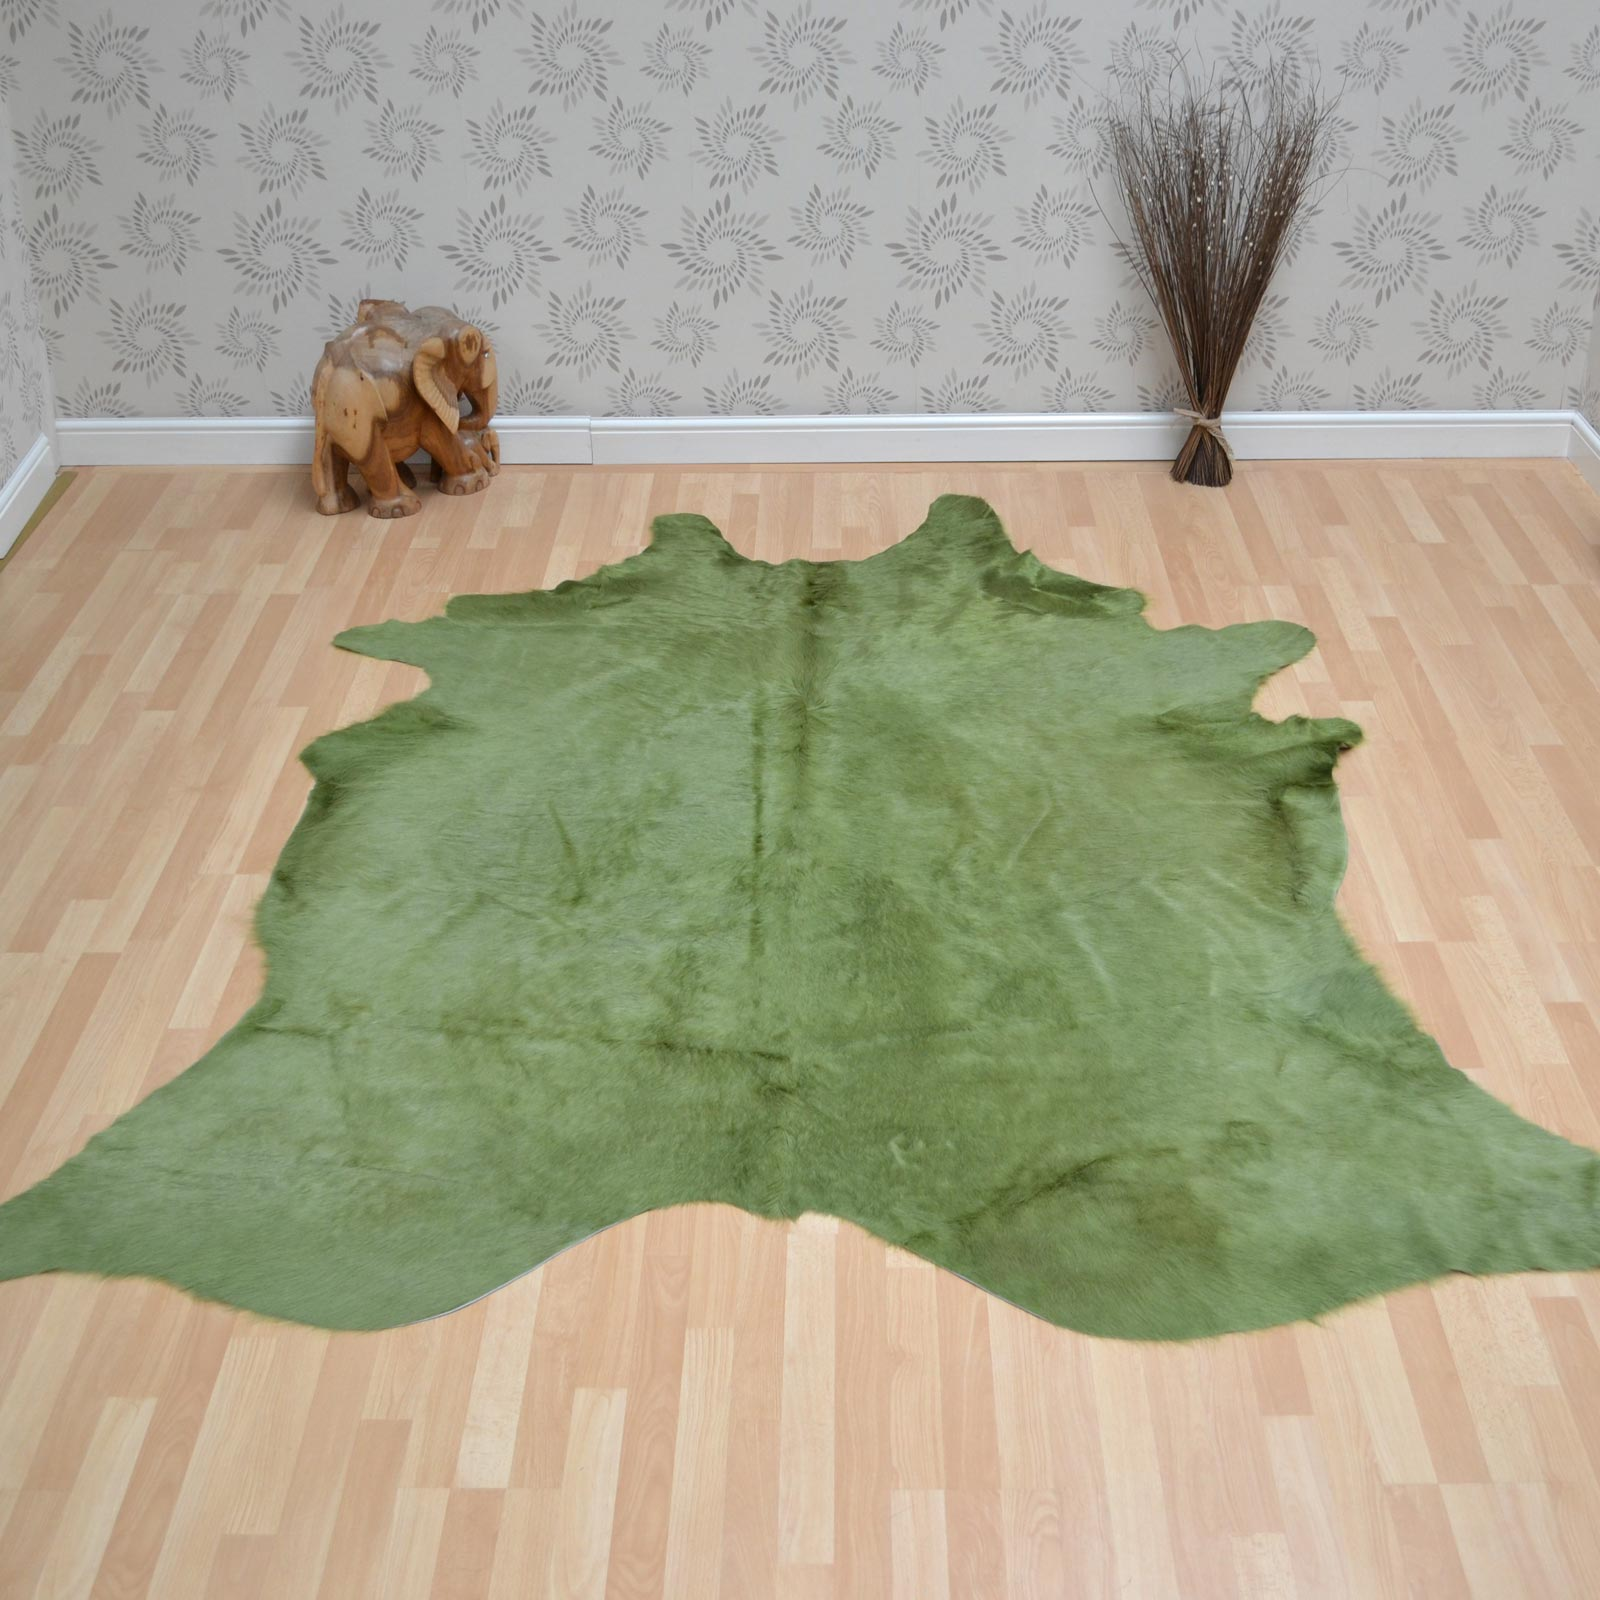 Cowhide Rug in Plain Green